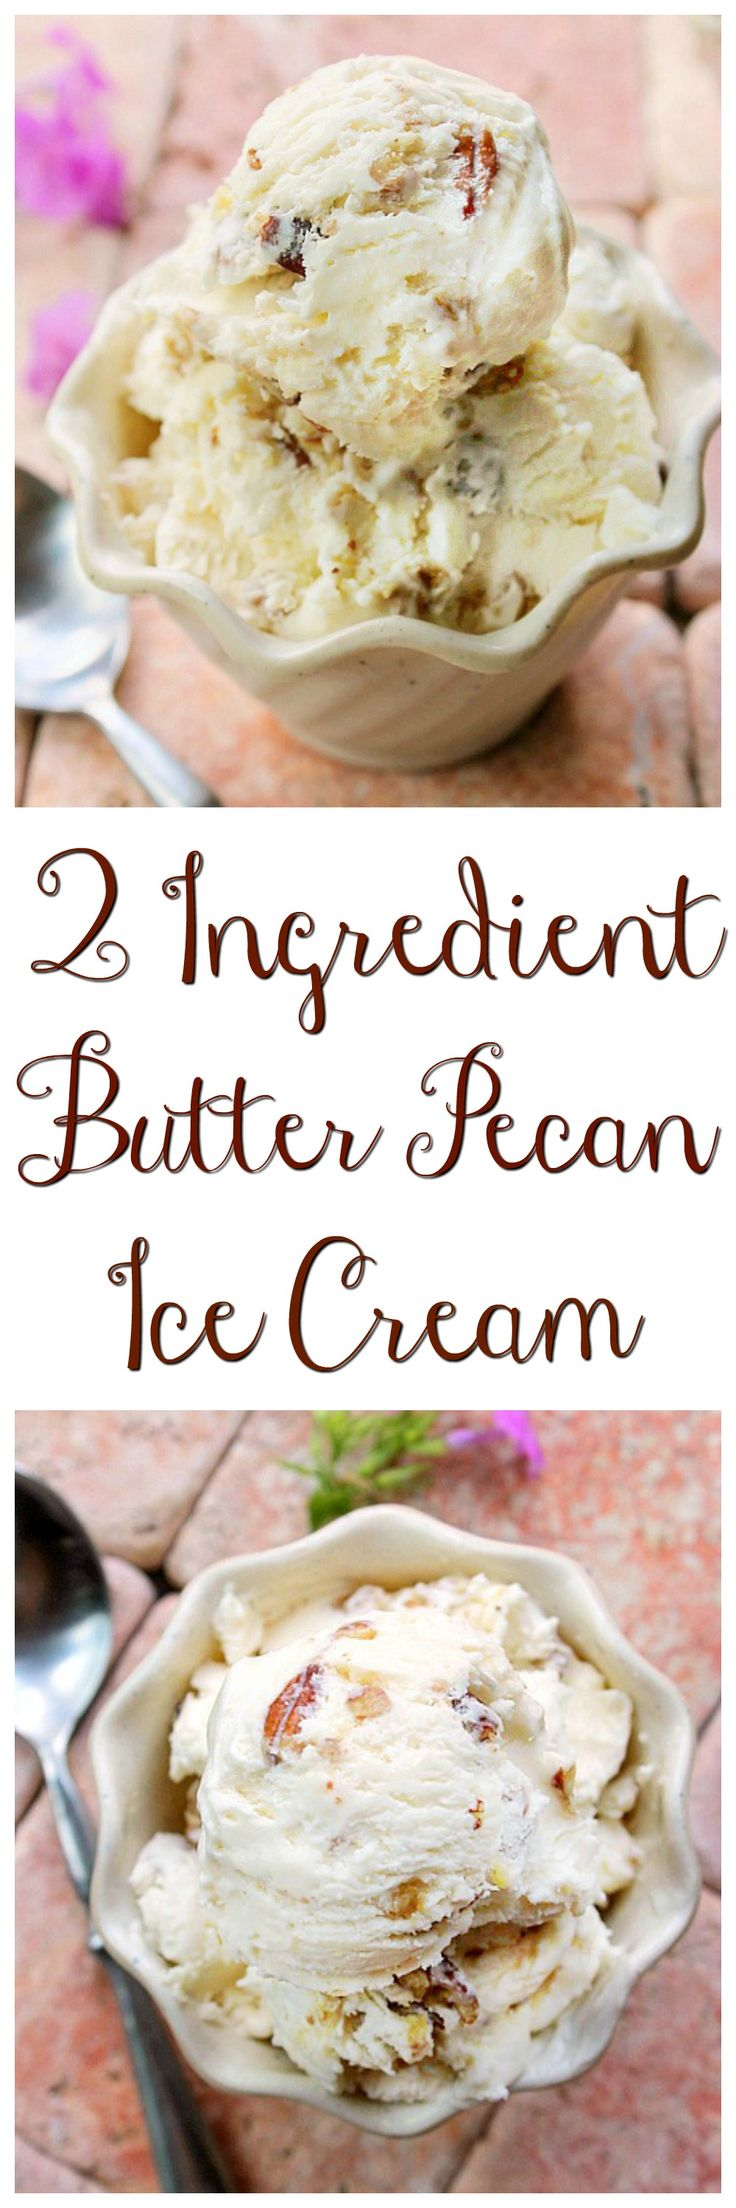 Smooth, creamy and rich describes this 2 Ingredient Ice Cream Recipe